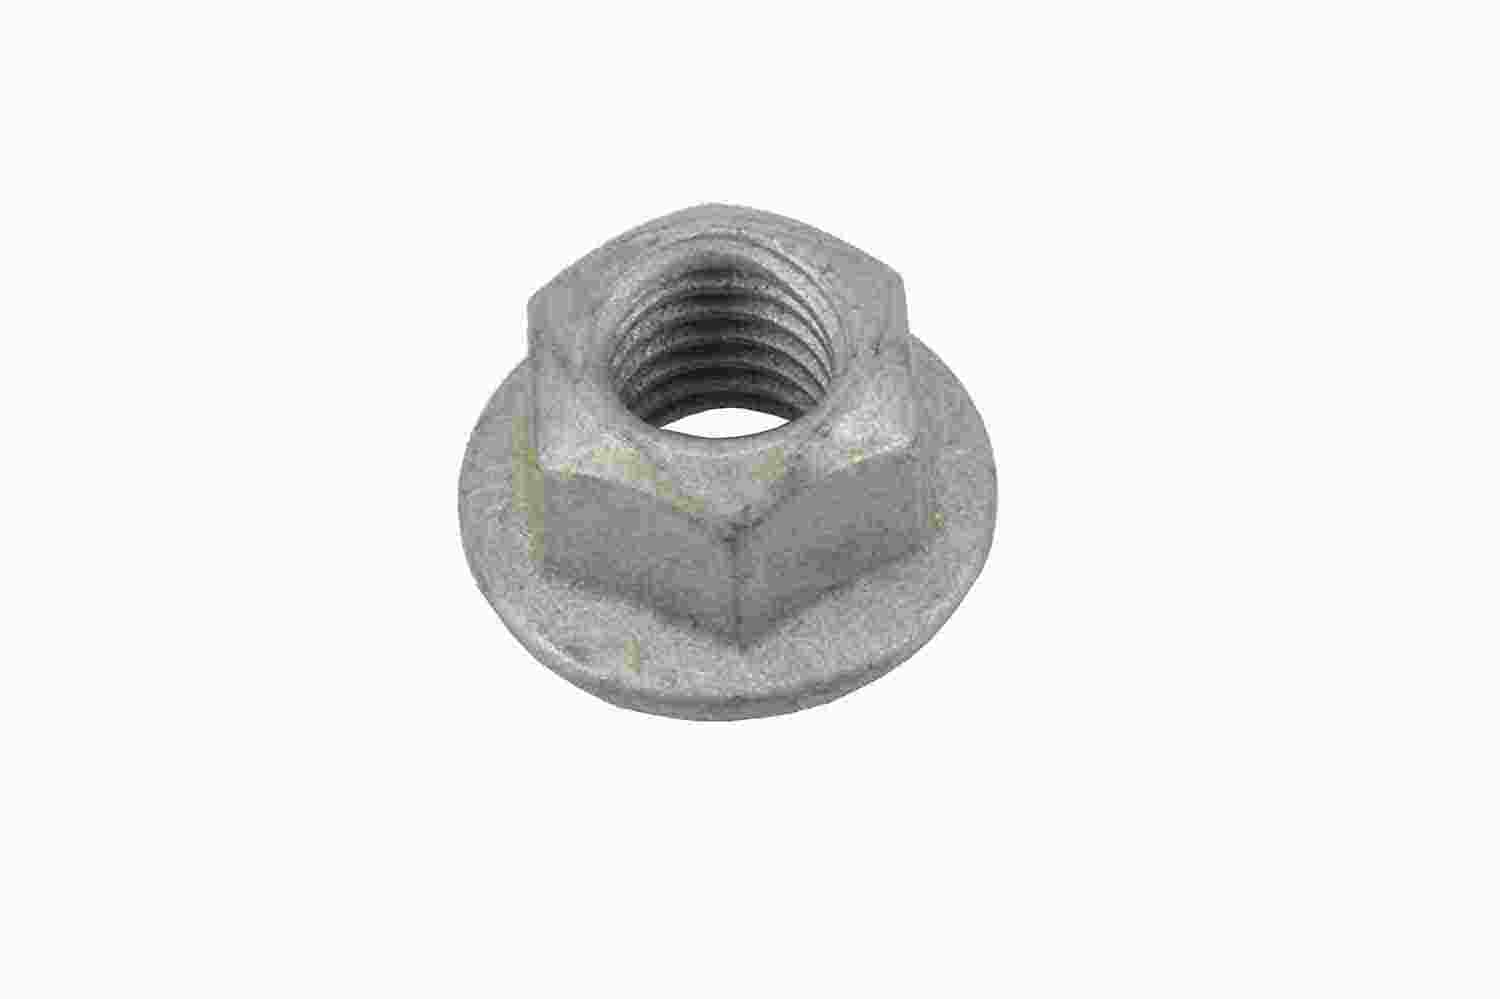 GM GENUINE PARTS - Secondary Air Injection Pump Check Valve Nut - GMP 11517996